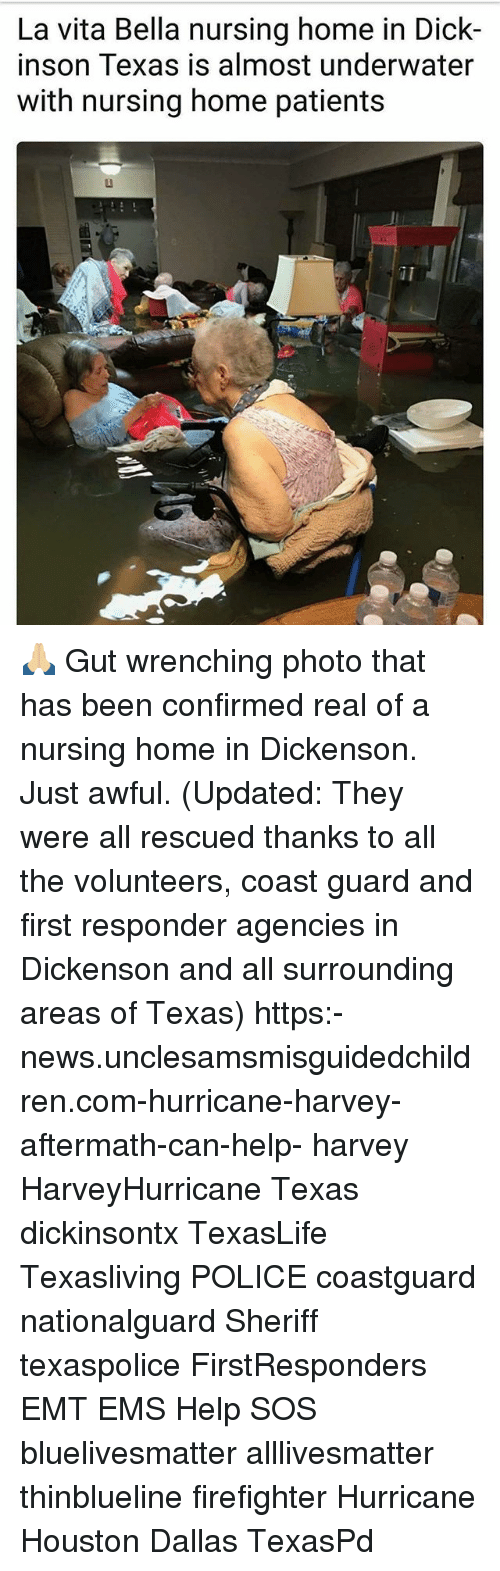 Vitas: La vita Bella nursing home in Dick-  inson Texas is almost underwater  with nursing home patients 🙏🏼 Gut wrenching photo that has been confirmed real of a nursing home in Dickenson. Just awful. (Updated: They were all rescued thanks to all the volunteers, coast guard and first responder agencies in Dickenson and all surrounding areas of Texas) https:-news.unclesamsmisguidedchildren.com-hurricane-harvey-aftermath-can-help- harvey HarveyHurricane Texas dickinsontx TexasLife Texasliving POLICE coastguard nationalguard Sheriff texaspolice FirstResponders EMT EMS Help SOS bluelivesmatter alllivesmatter thinblueline firefighter Hurricane Houston Dallas TexasPd